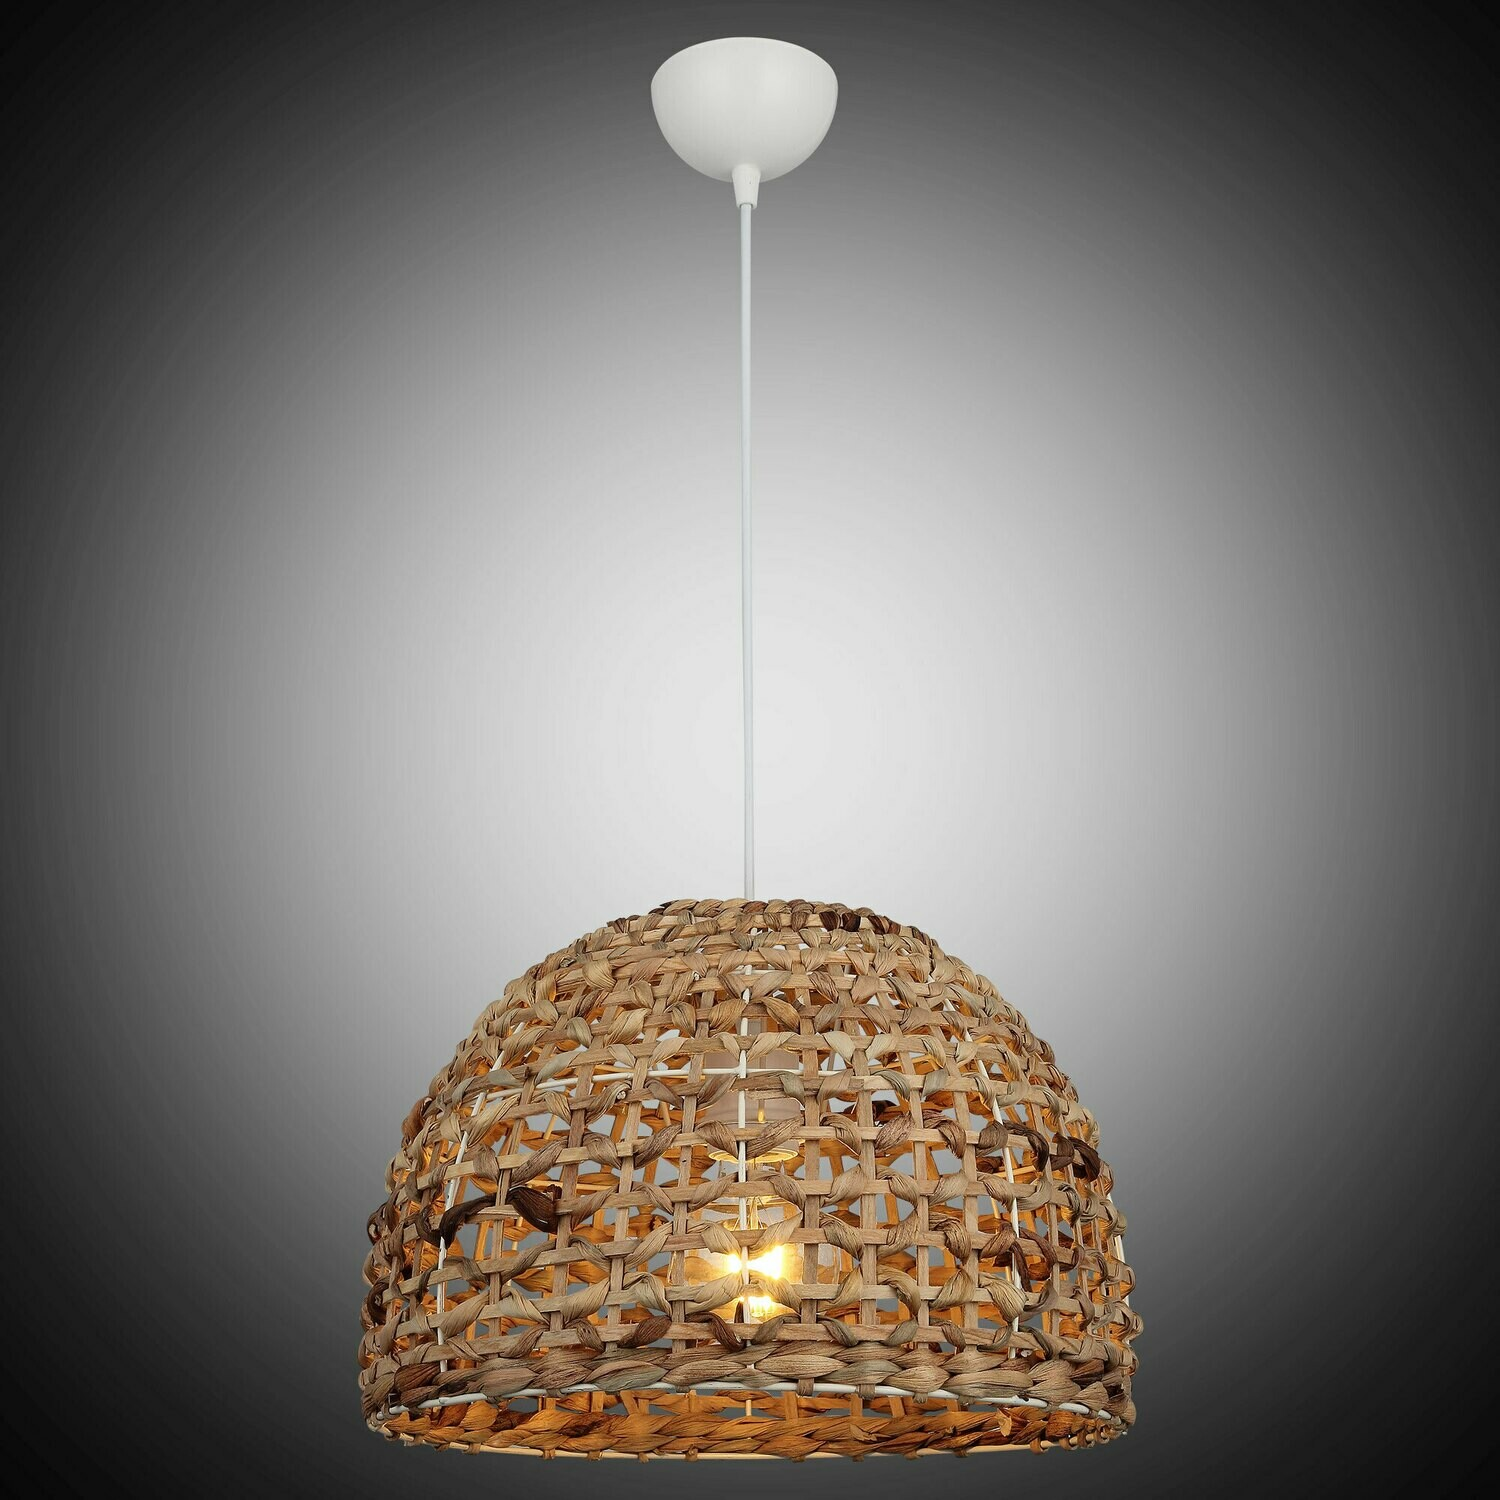 EVAN Banana leaf and wood pendant 1xE27 natural power-cord white